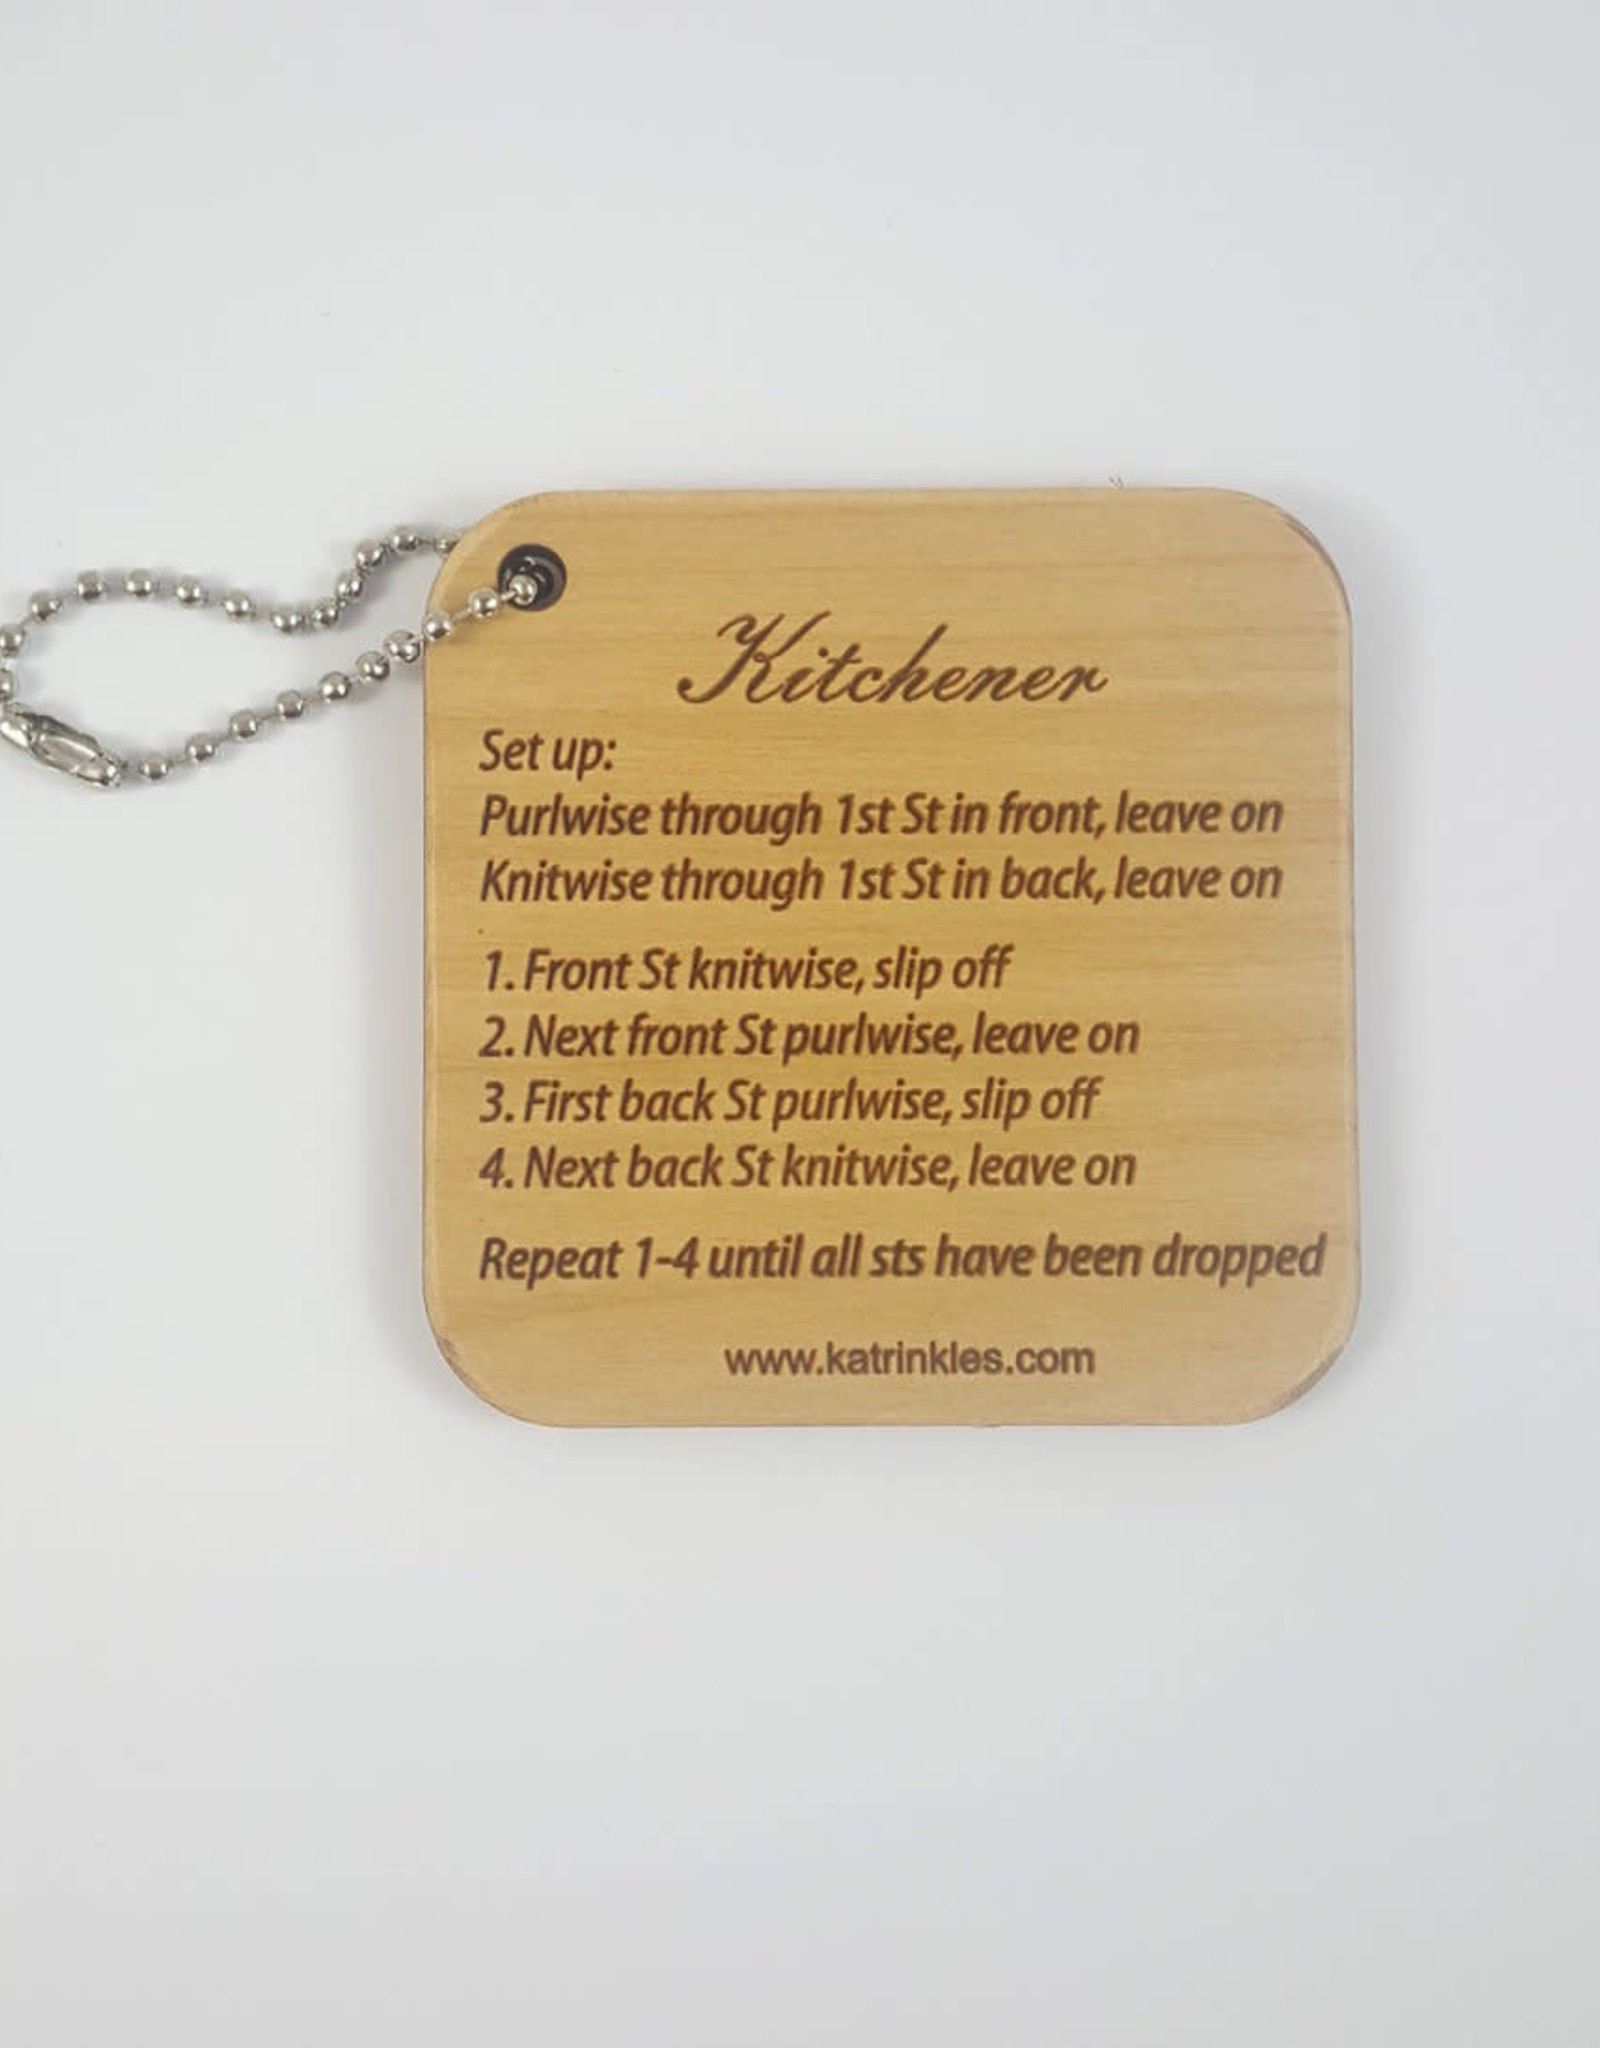 Katrinkles Katrinkles Customized Keychain